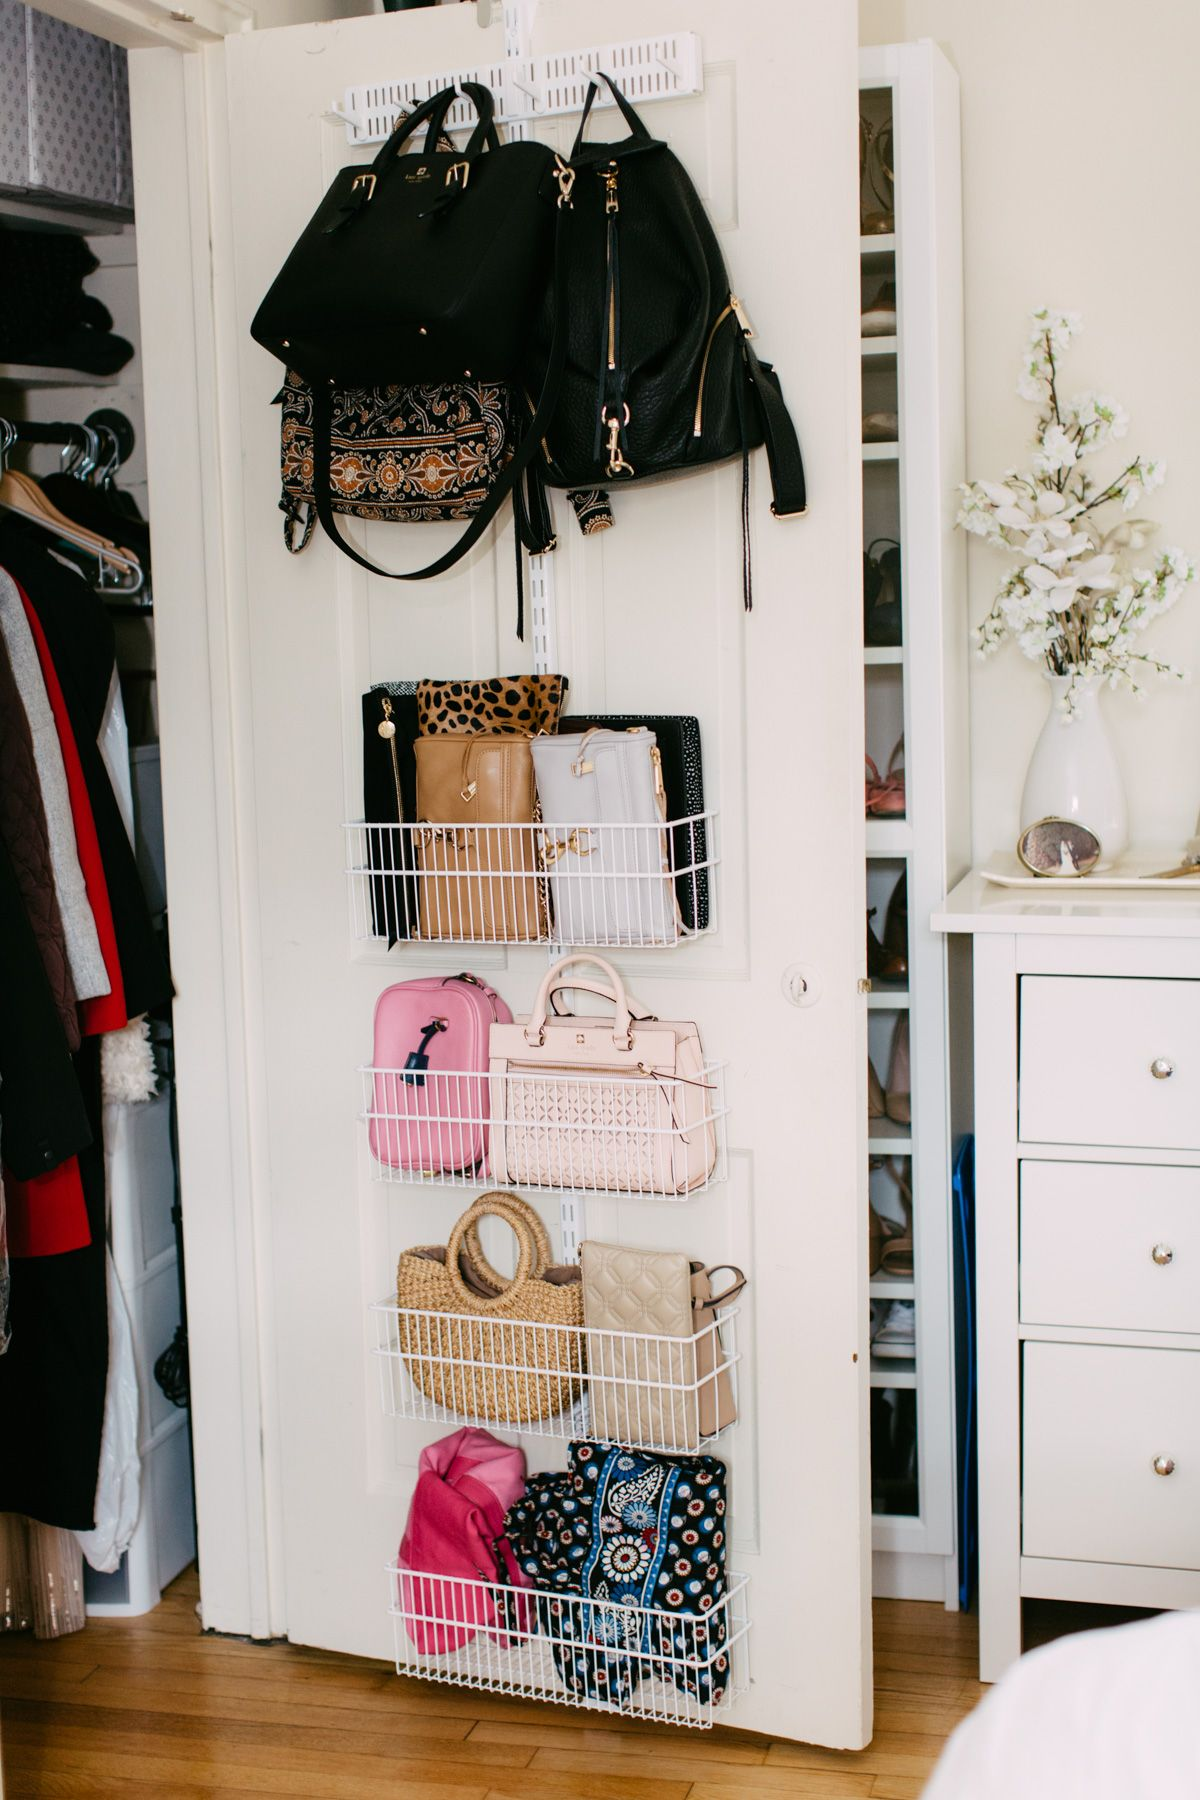 12 Small Bedroom Storage Ideas - DIY Storage Ideas for Small Rooms